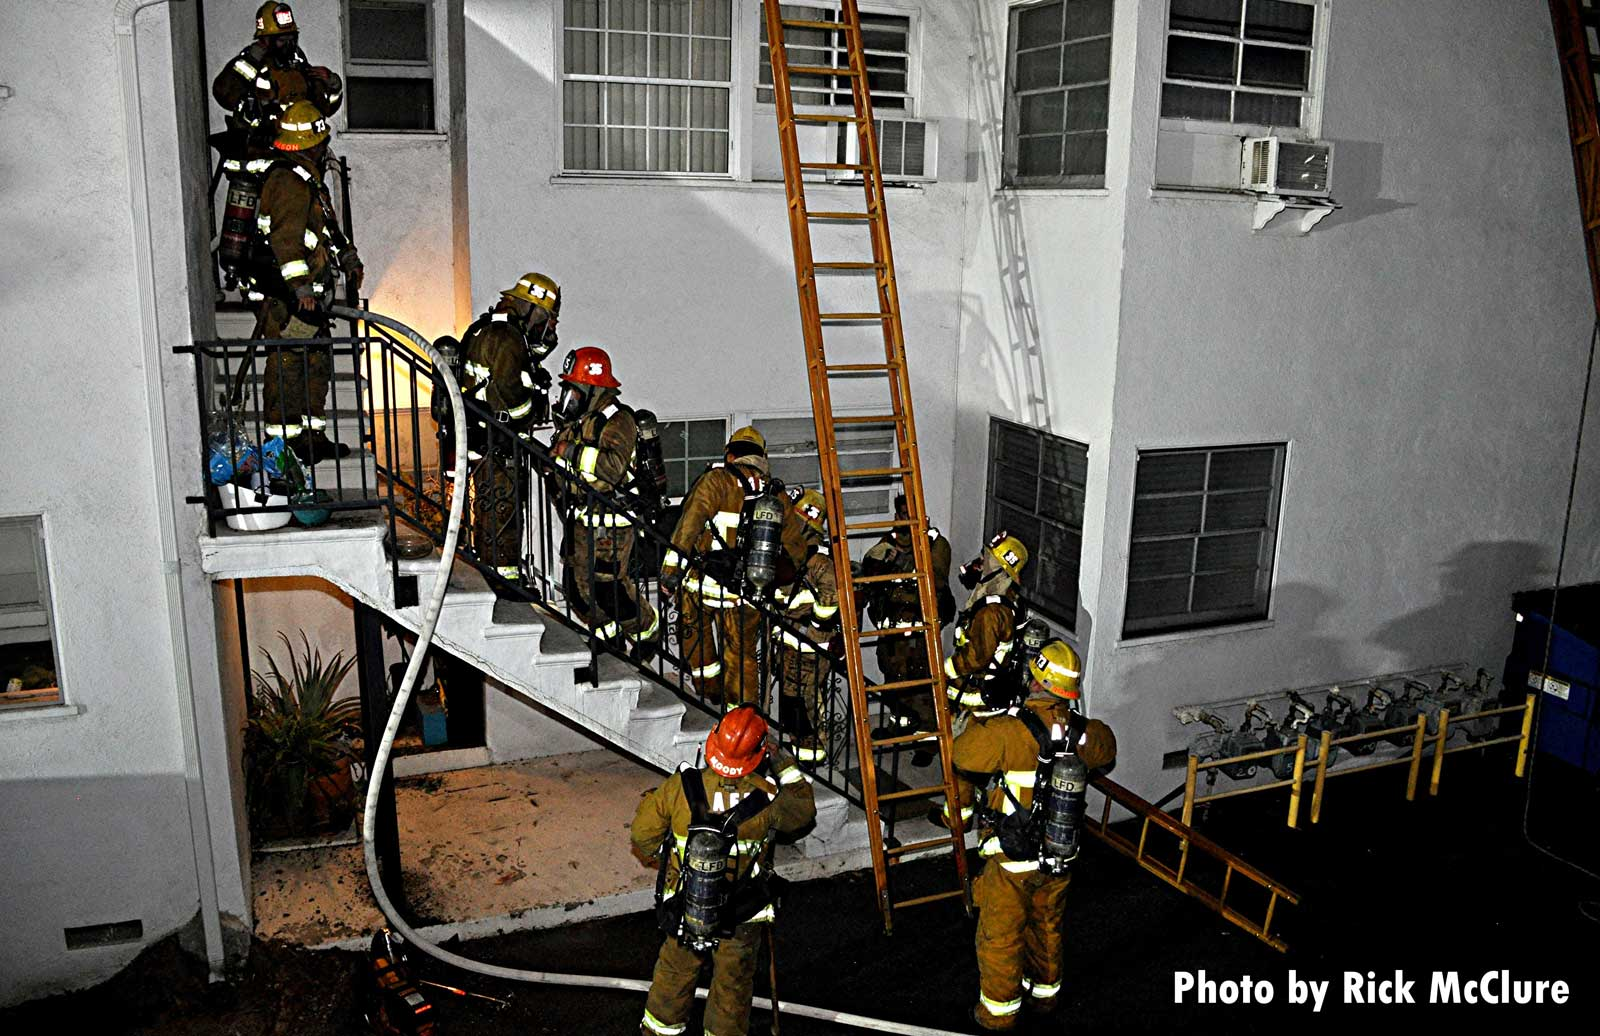 Laddered building and LAFD firefighters